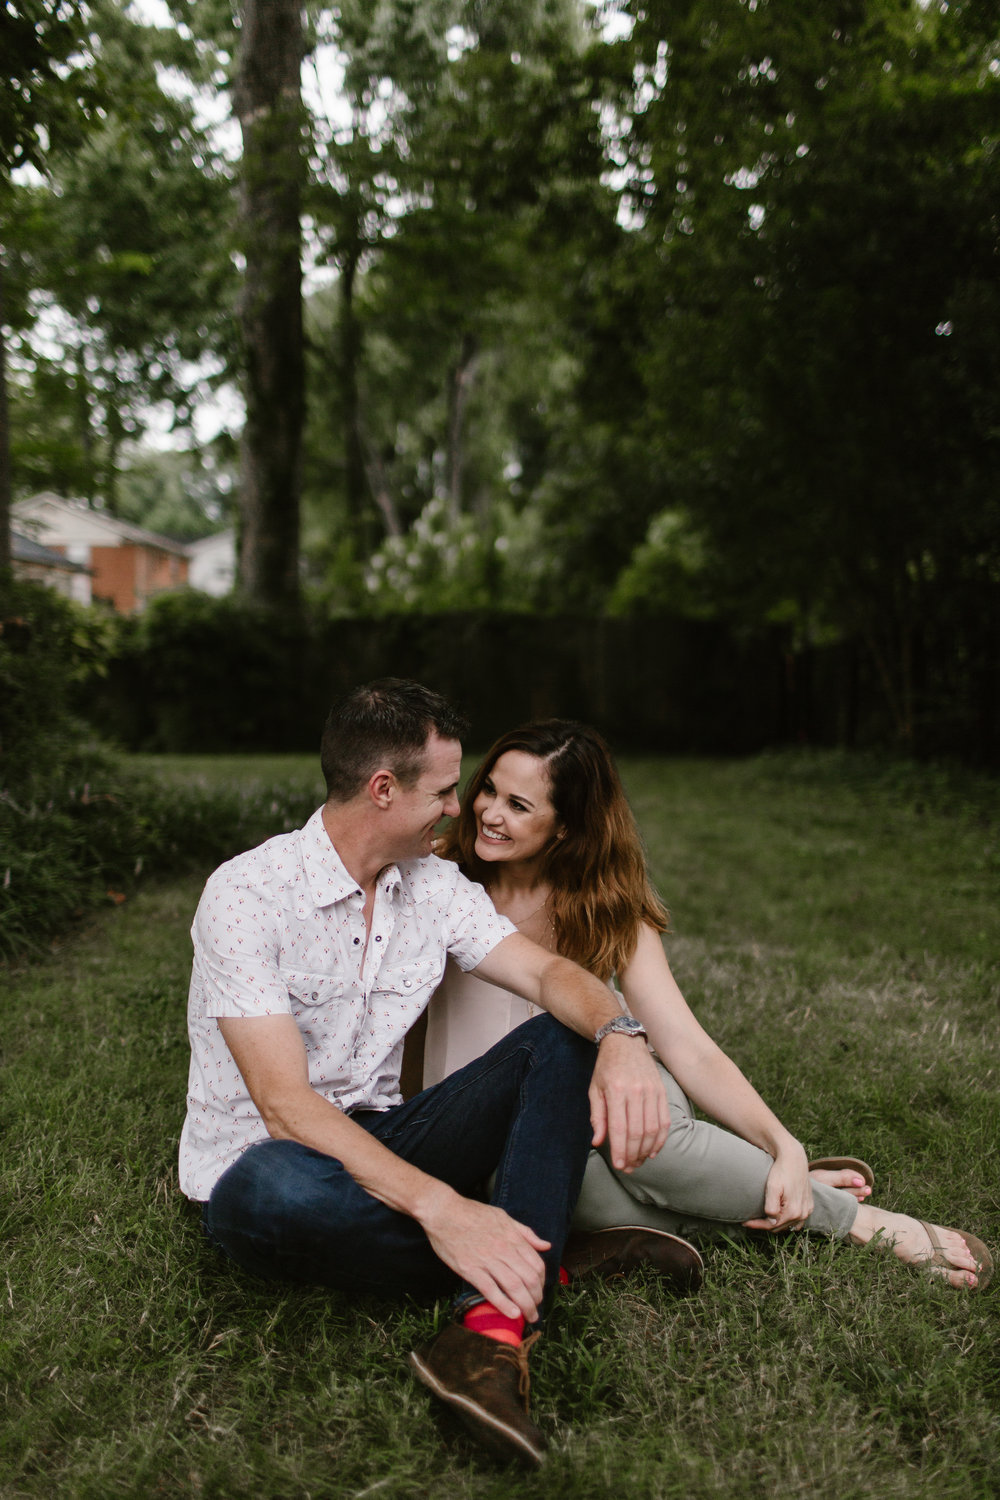 AliceBrianEngaged - Alicia White Photography-116.jpg